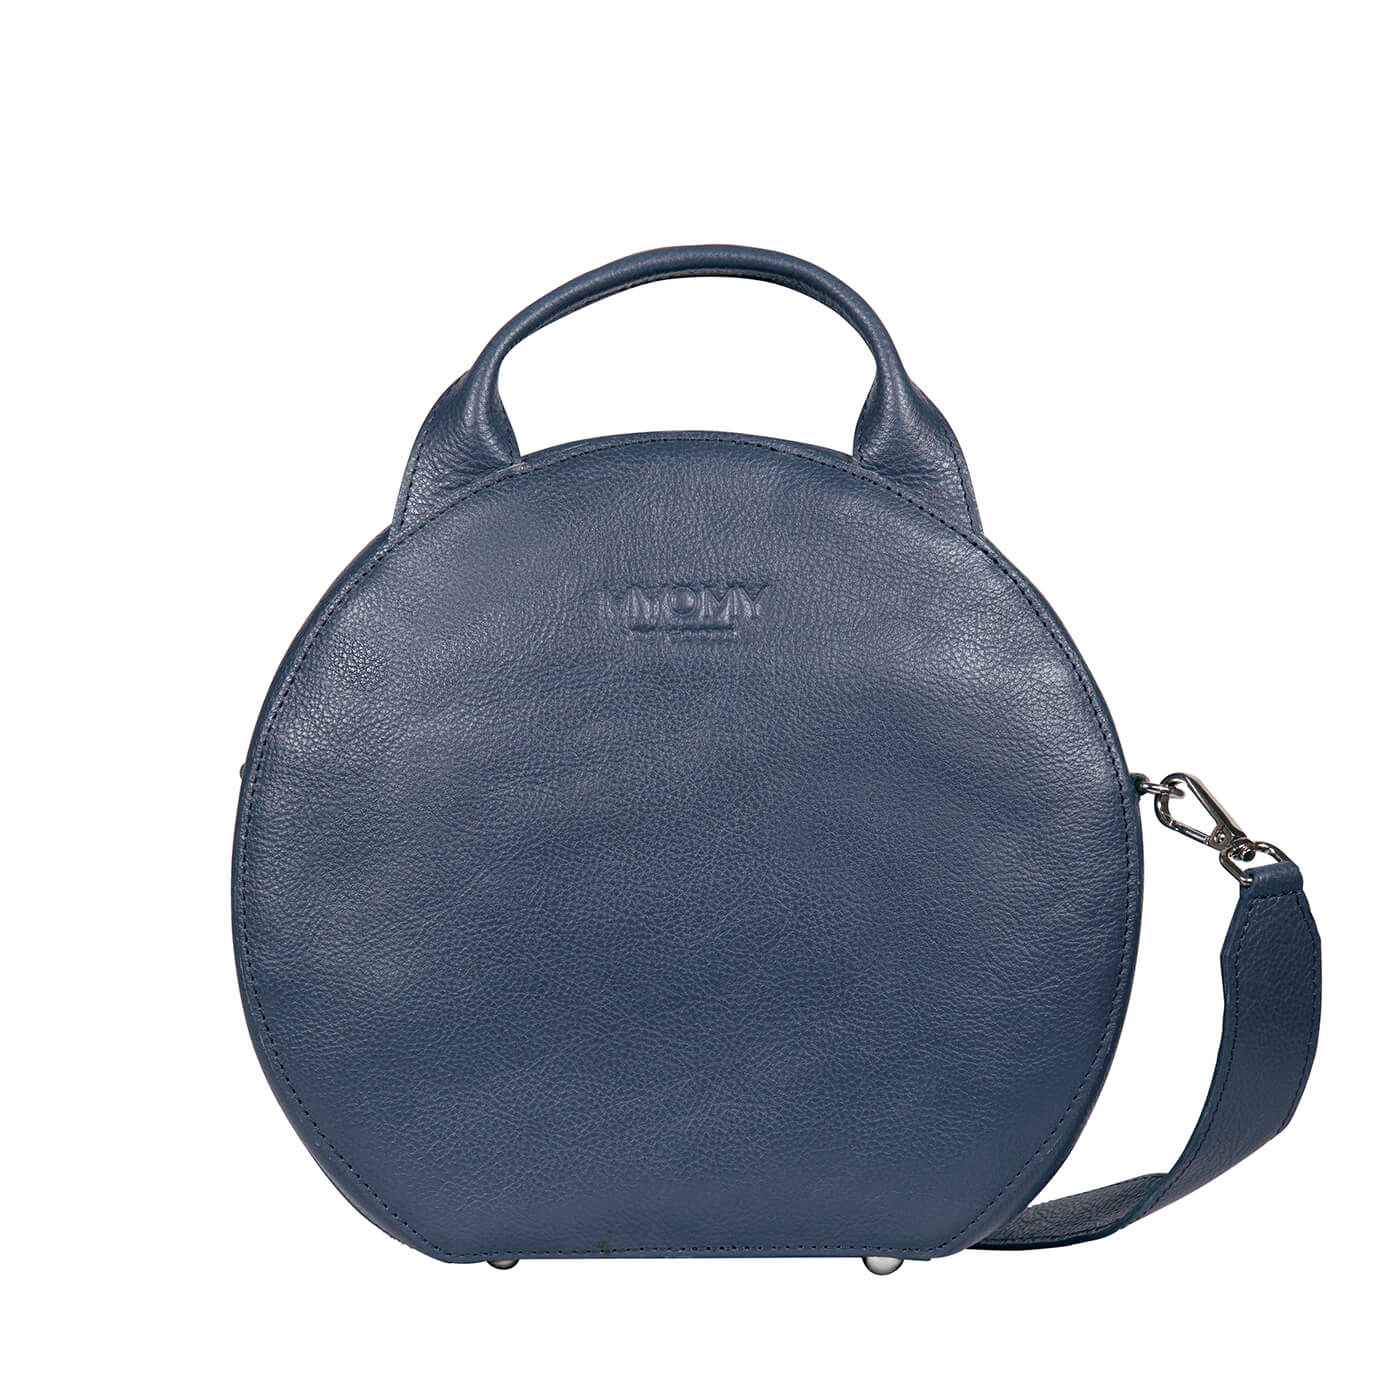 MY BOXY BAG Cookie - seville denim blue